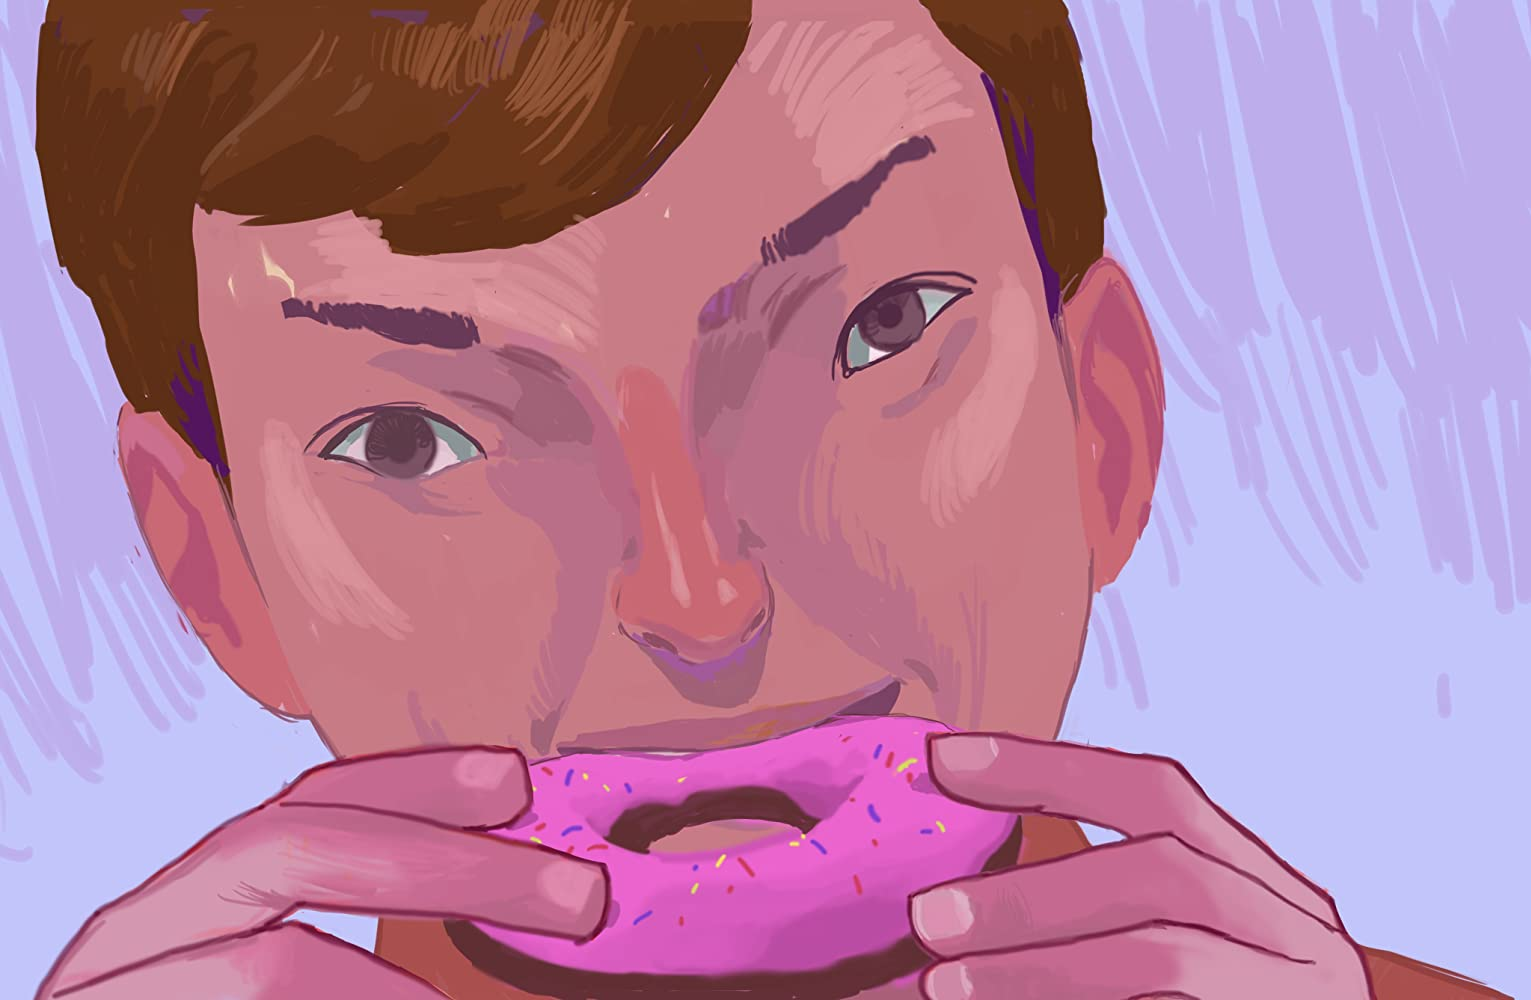 [SXSW Review] THE DONUT KING